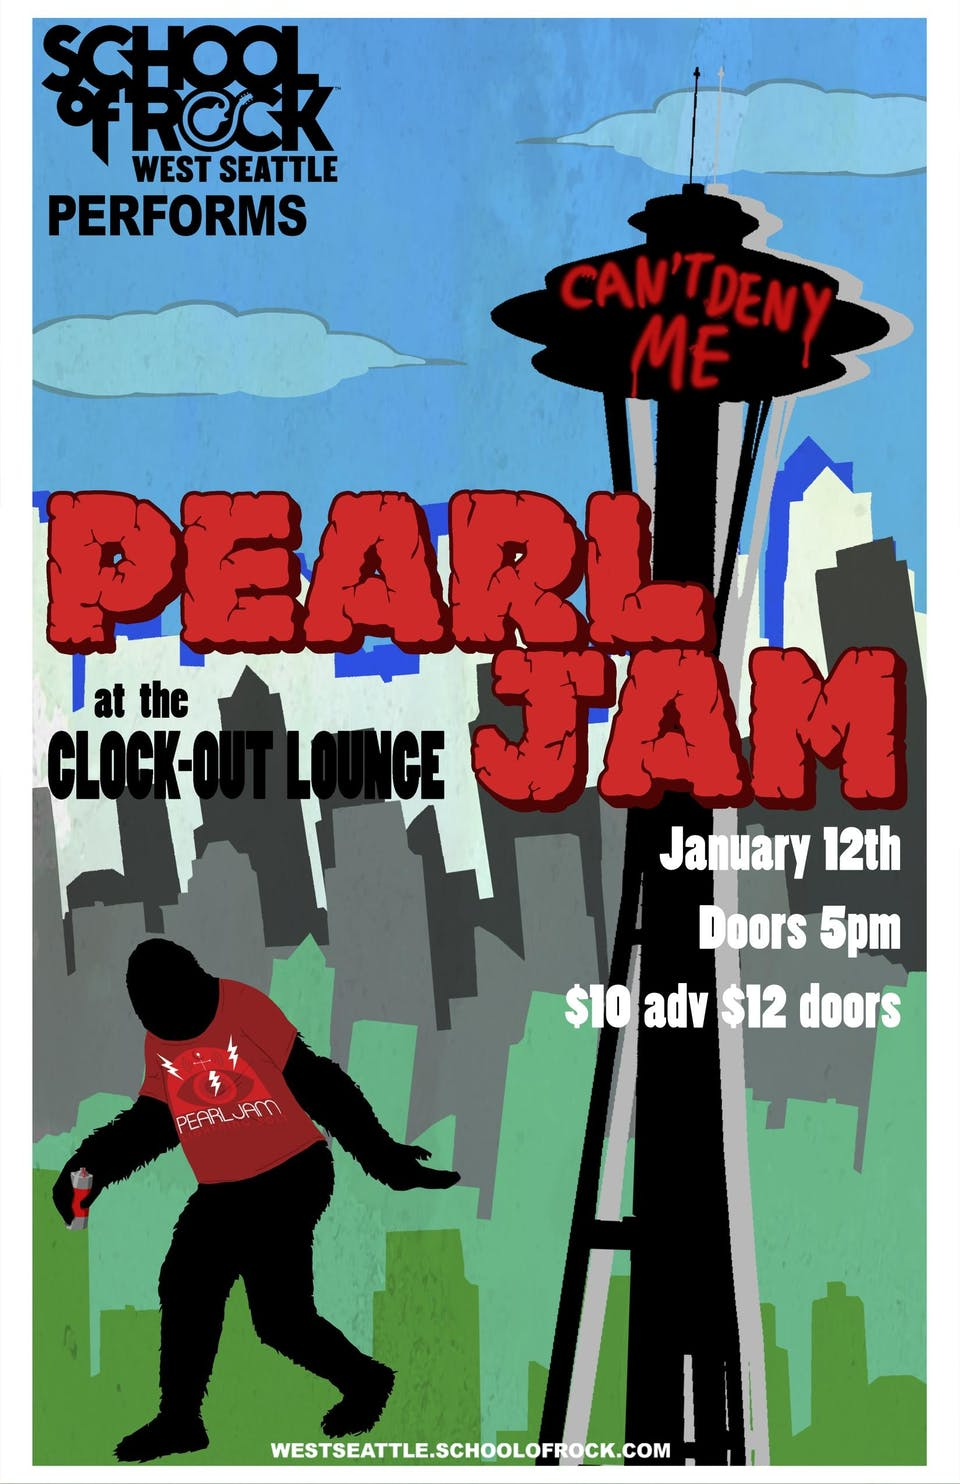 School of Rock West Seattle performs Pearl Jam